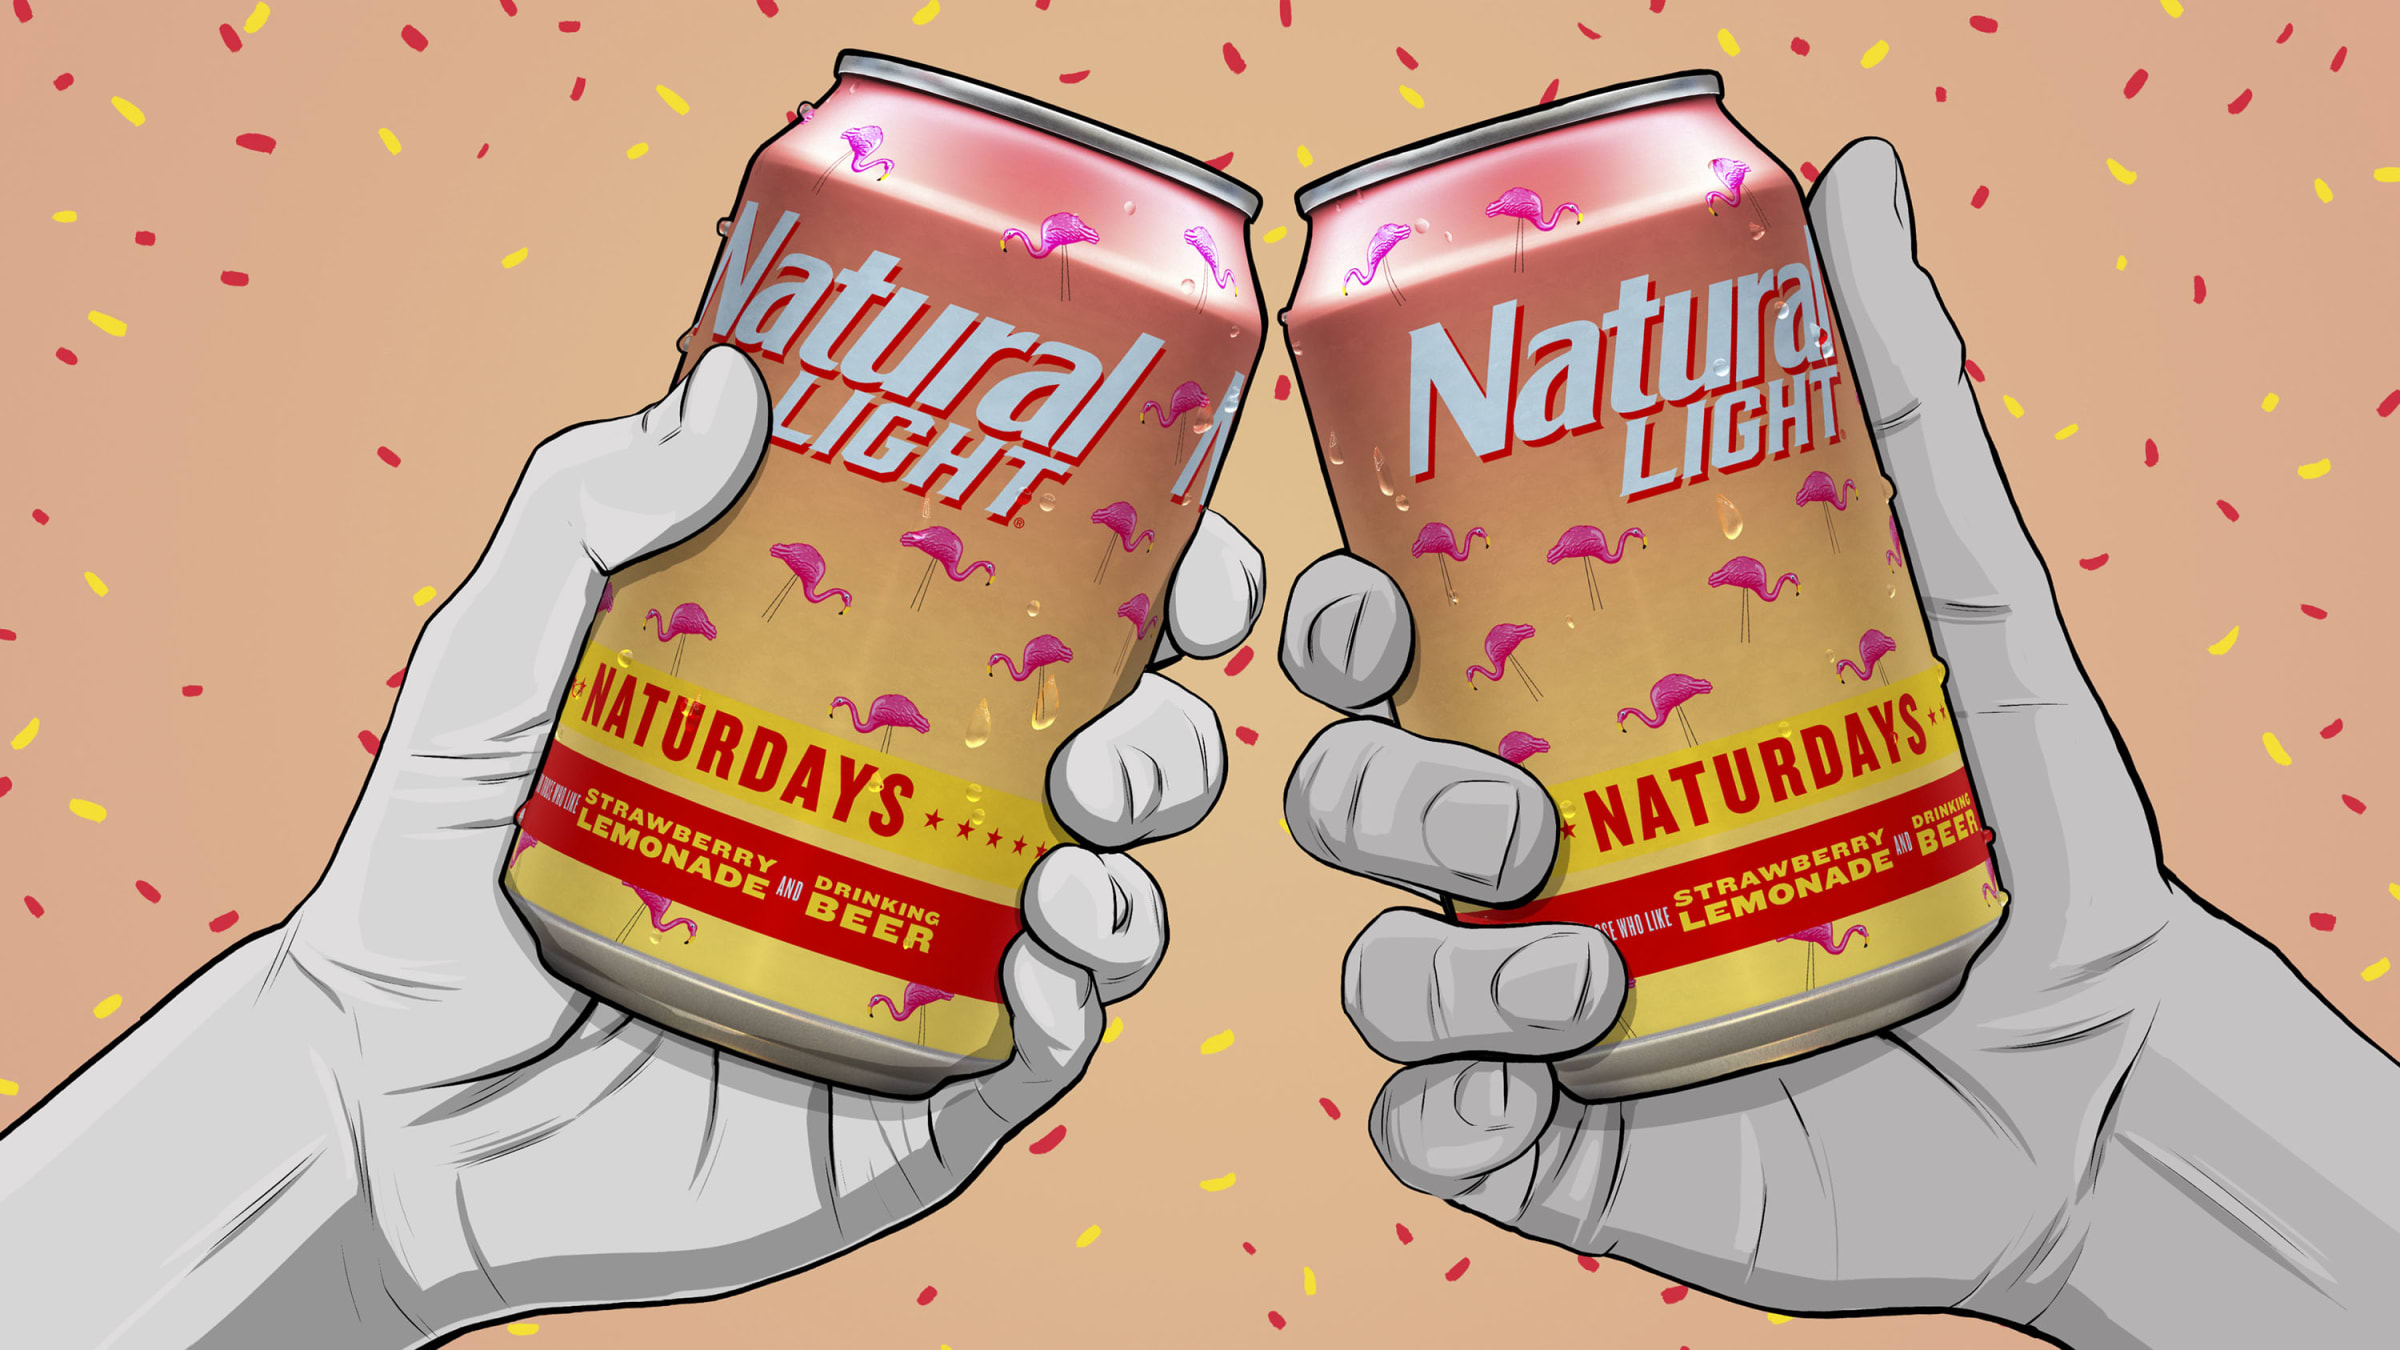 I Really Want to Hate Naturdays Fruit Beer but I Can't Stop Drinking It